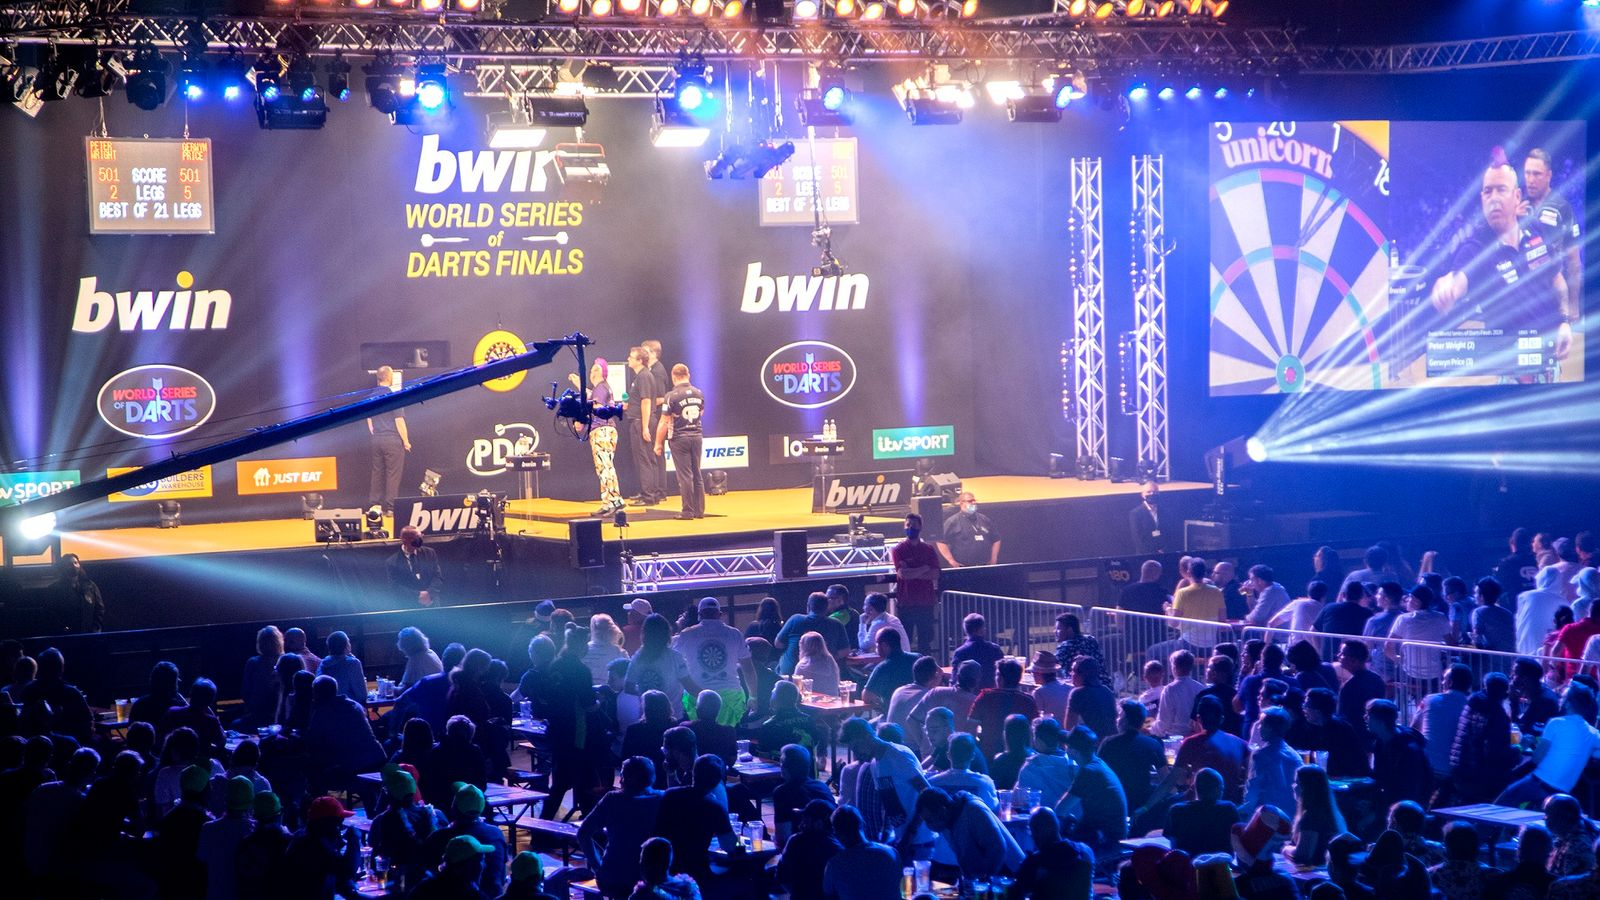 PDC European Tour: Two more events in Germany added to calendar